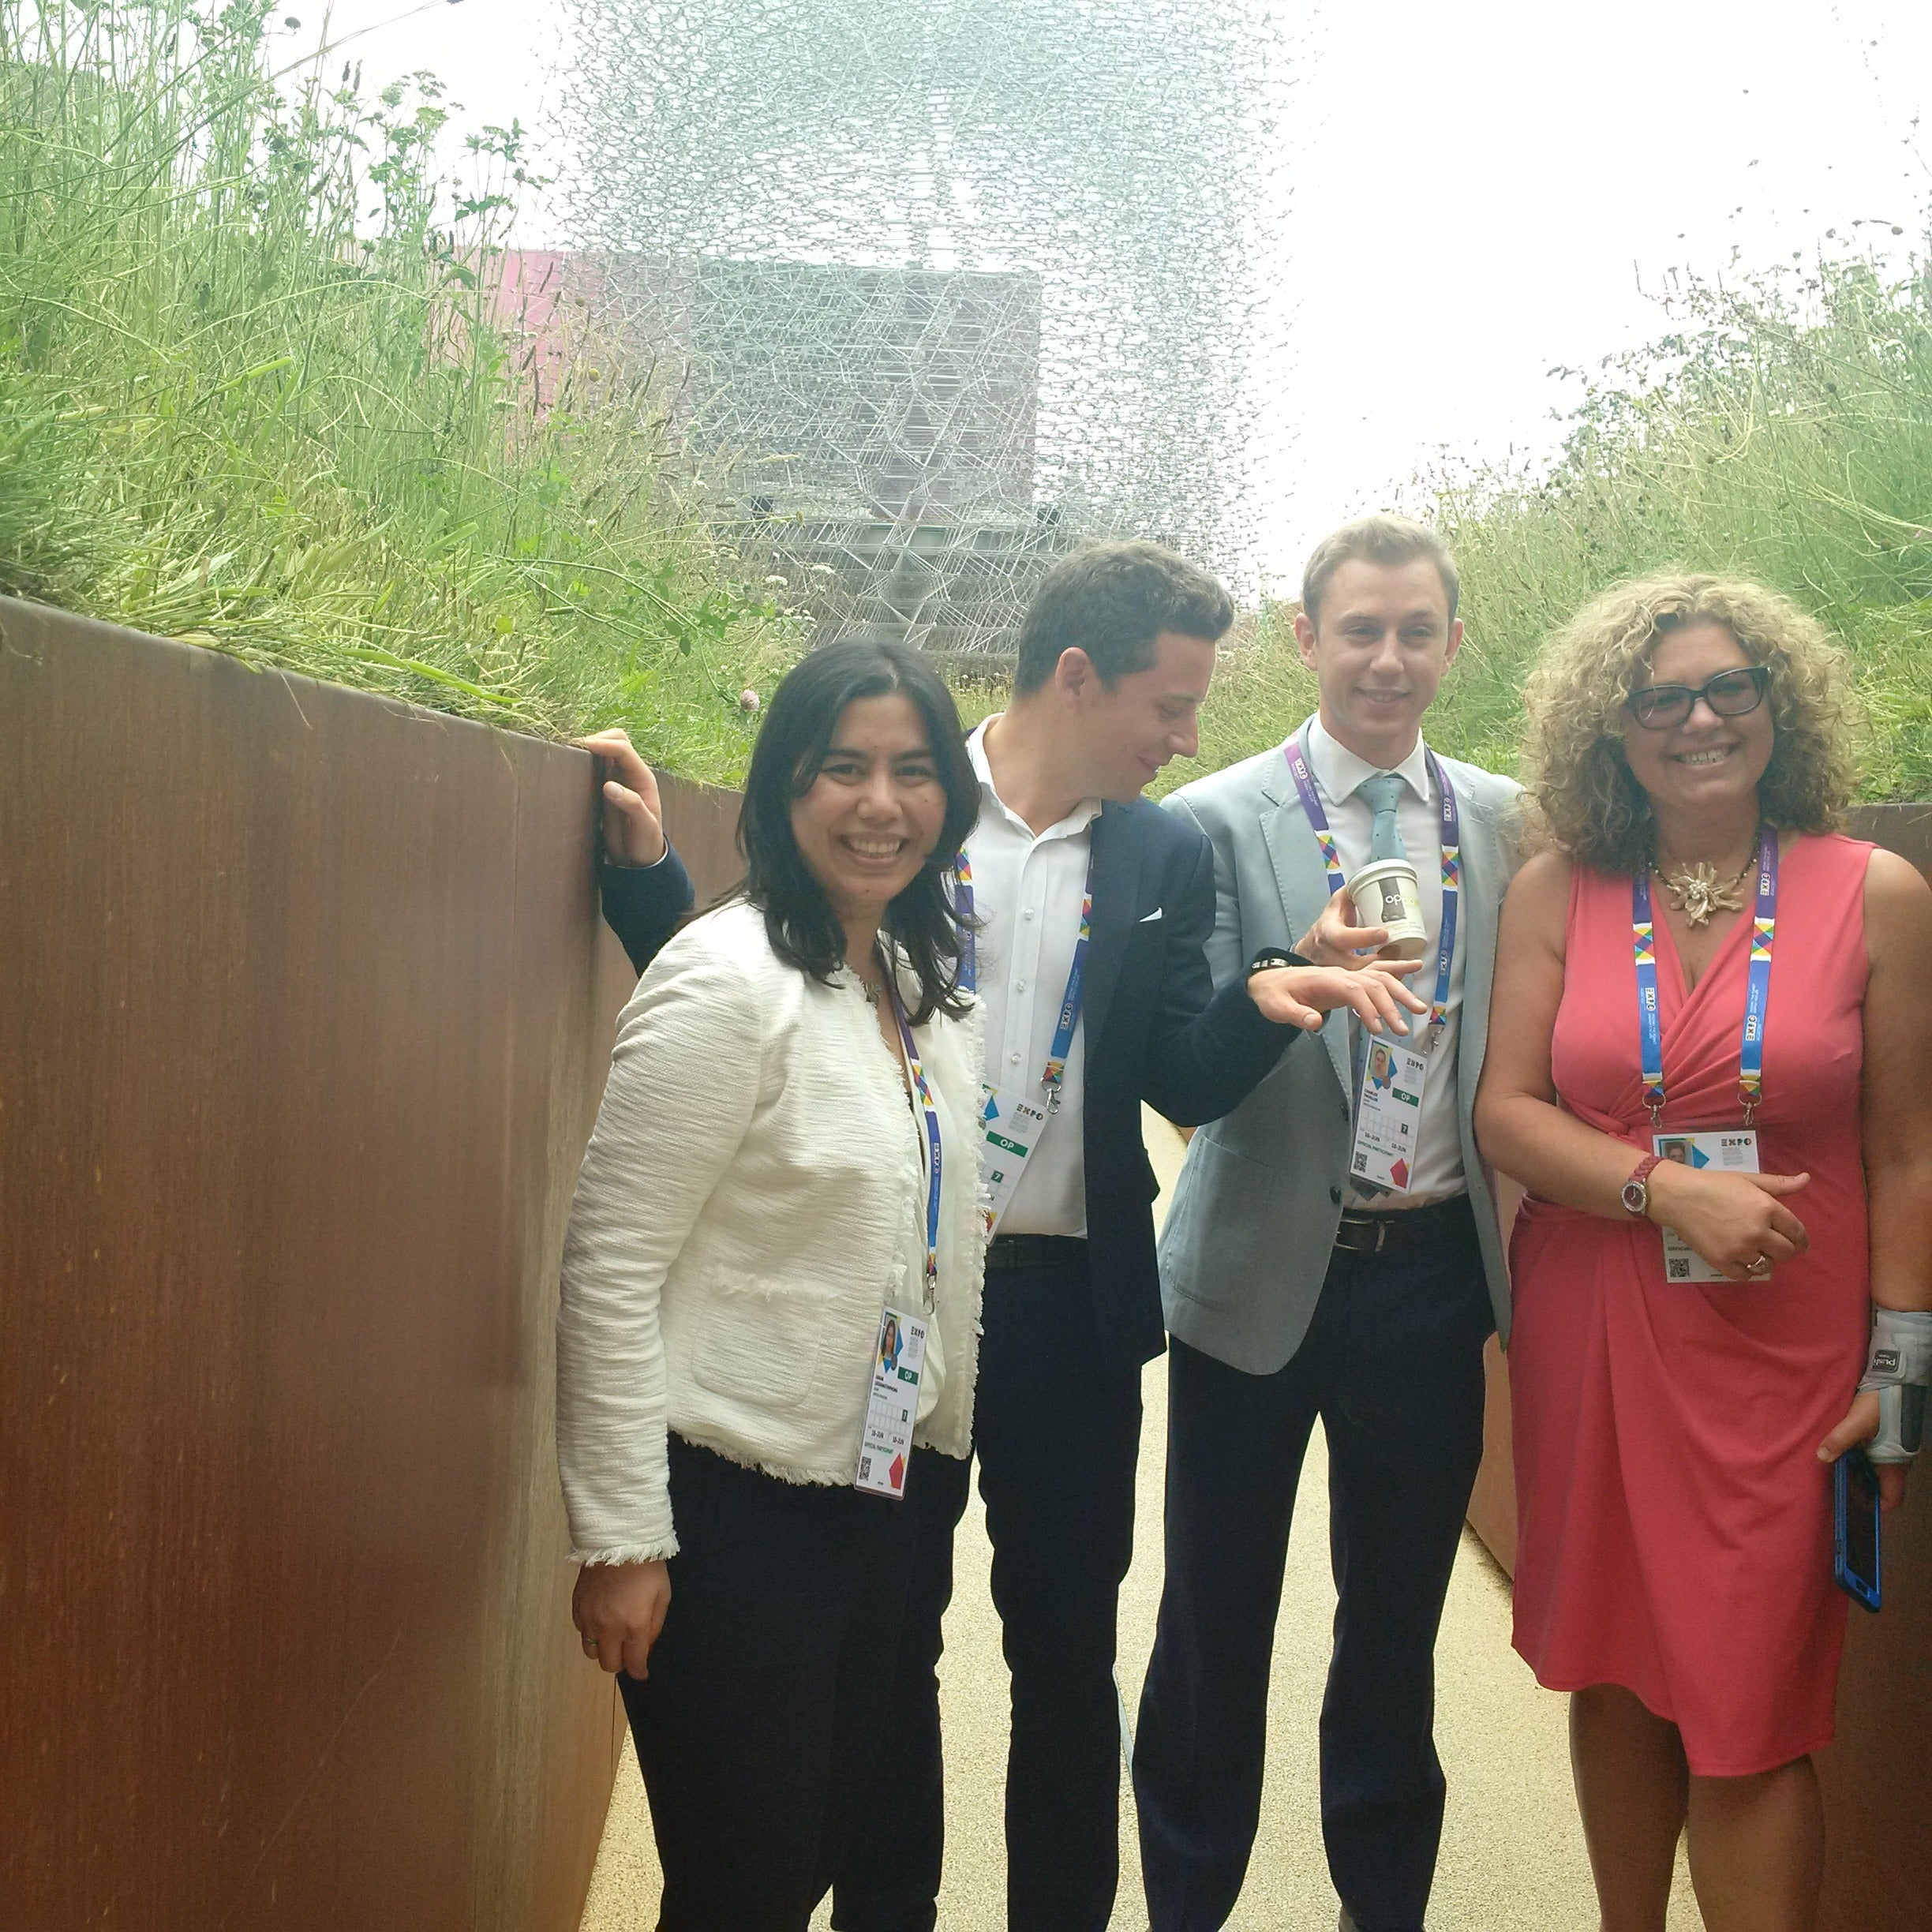 The Four Entrepreneurs at the Milan Expo 2015